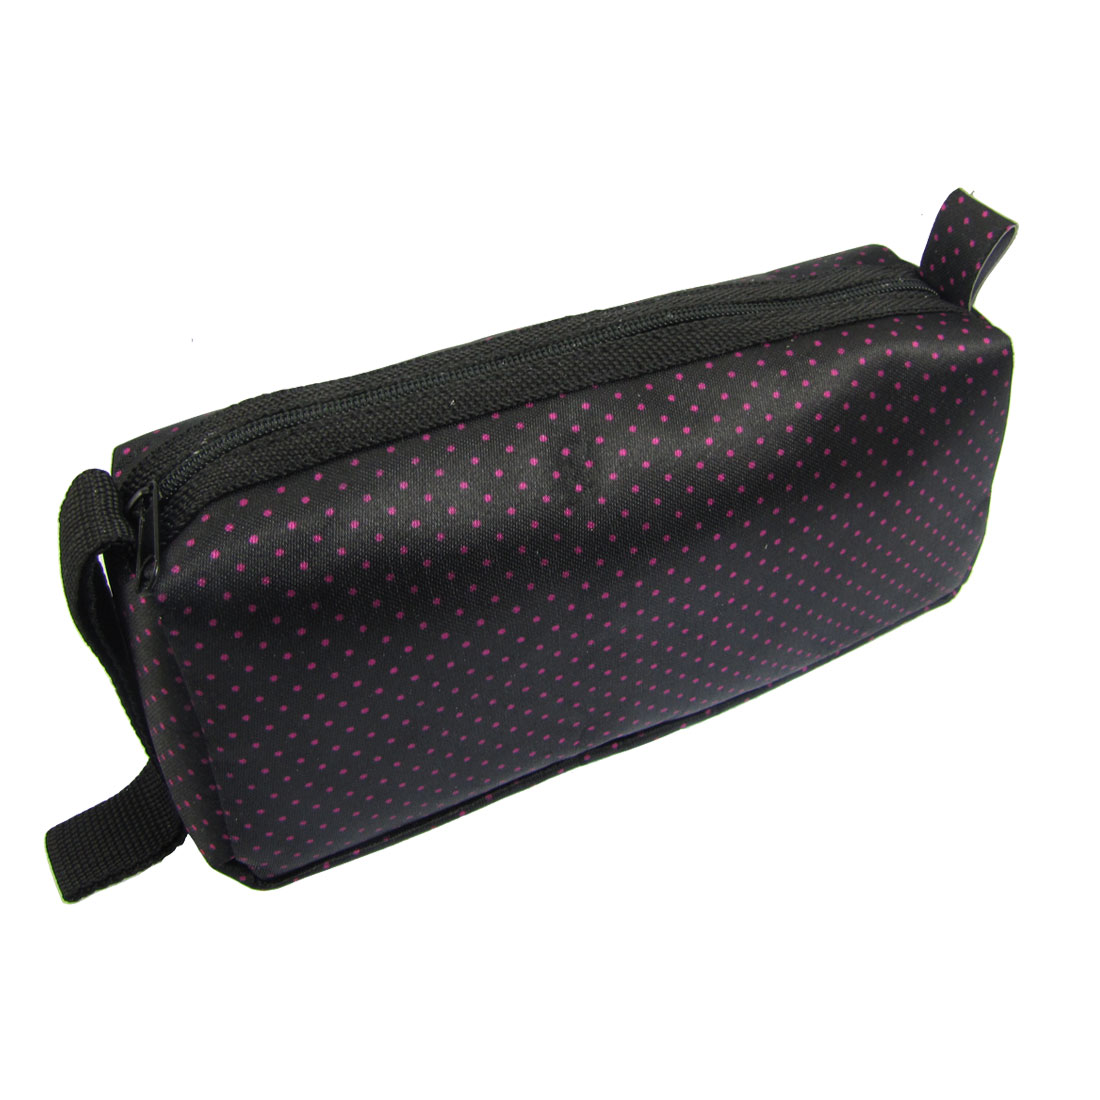 Lady Black Fuchsia Dotted Print Zipper Cosmetic Pouch Holder Bag w Strap